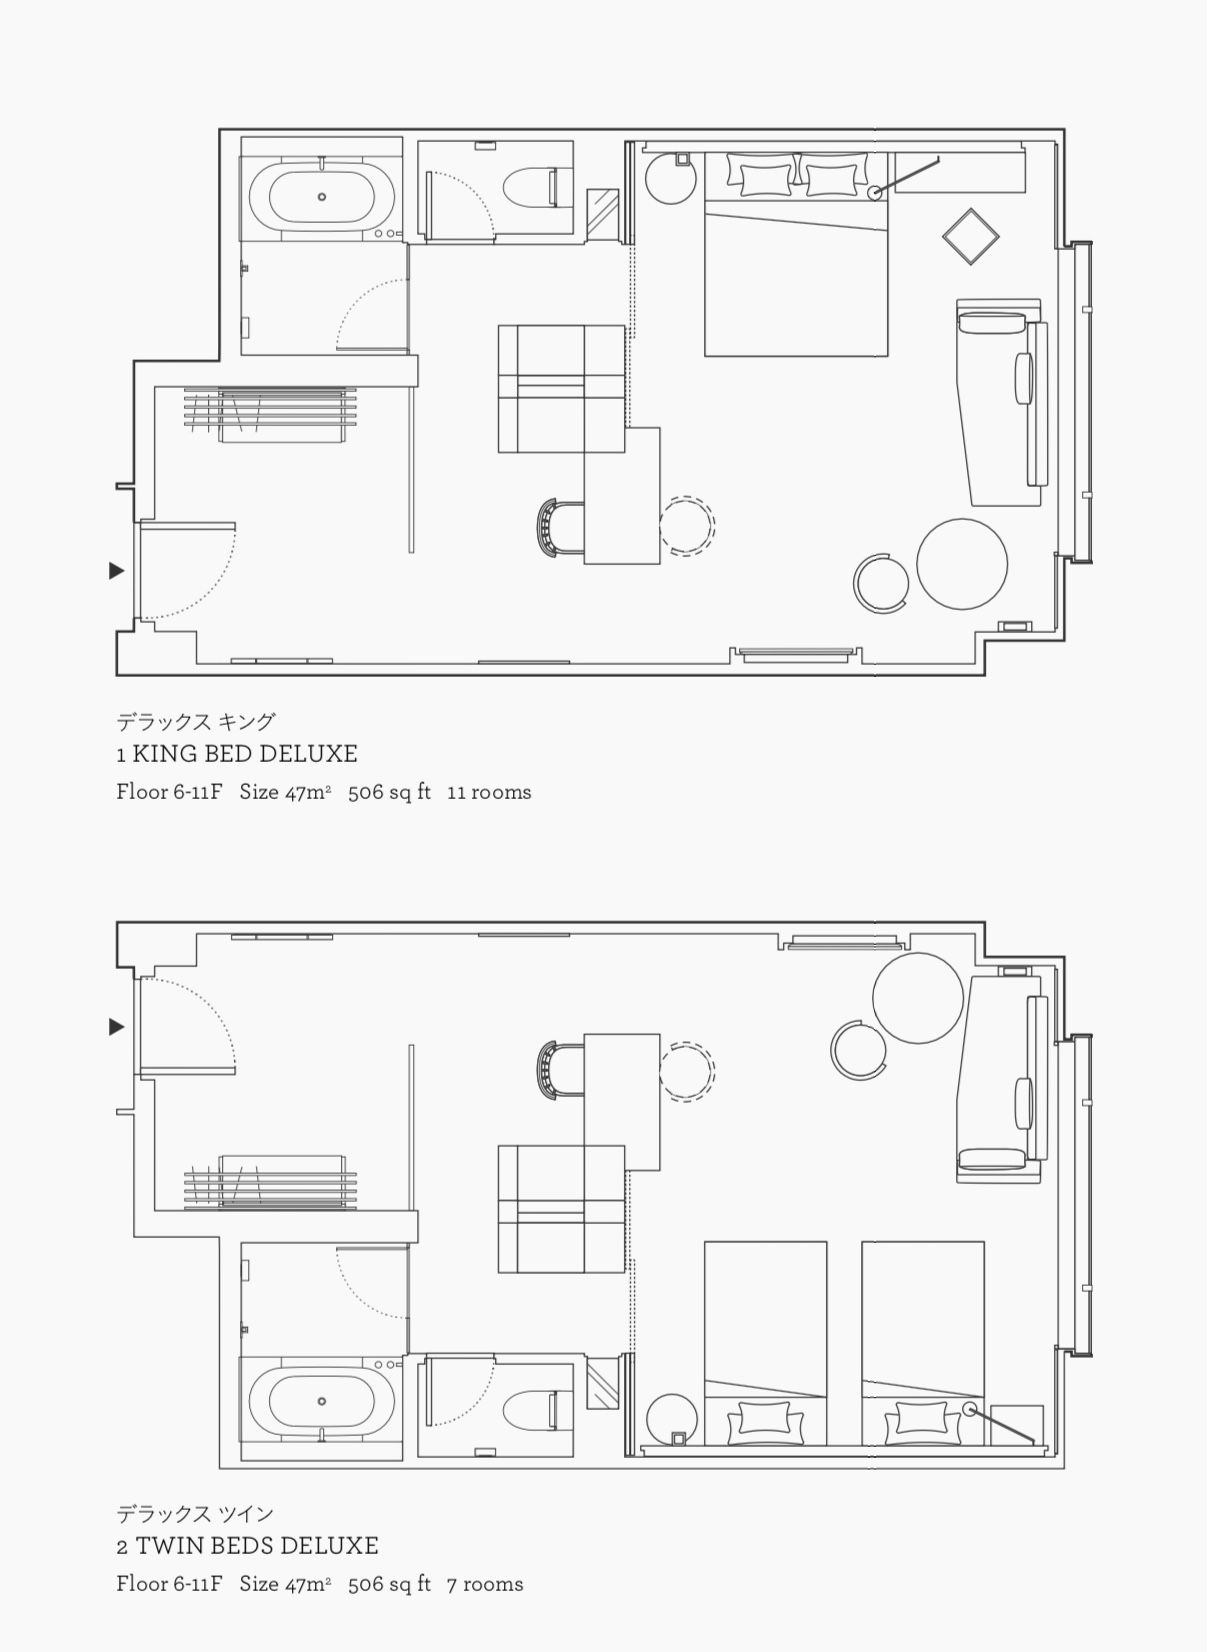 Update Hyatt Centric Ginza Tokyo Deluxe Room 47 Sqm Japanese Hotel Hotel Design Hotel Project